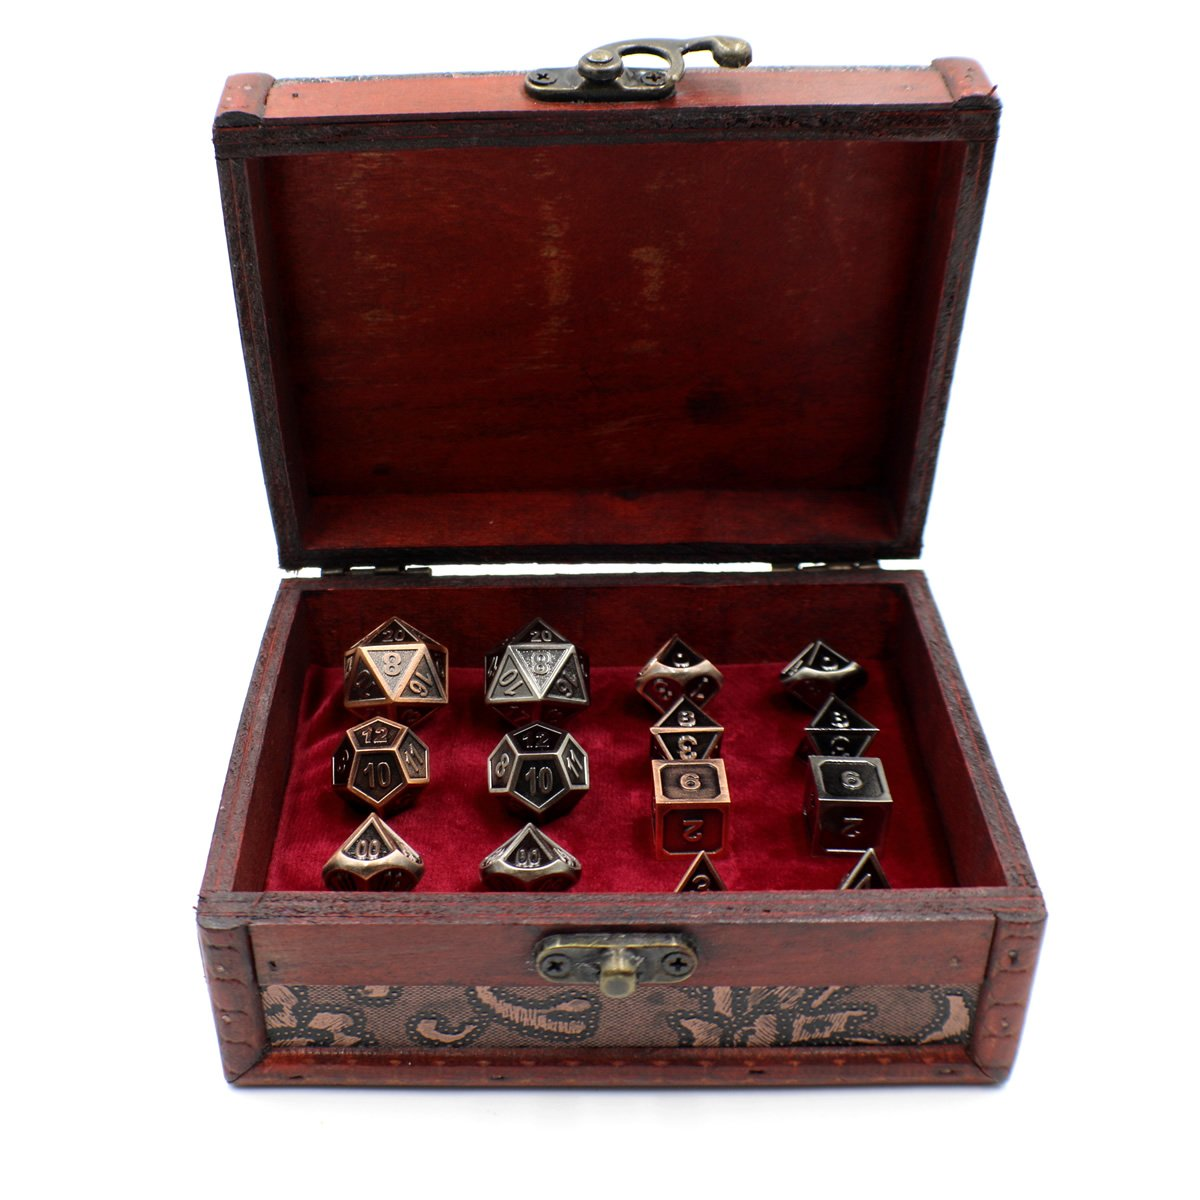 Two Metal Dice Role Playing Sets with Storage Chest for Tabletop Games